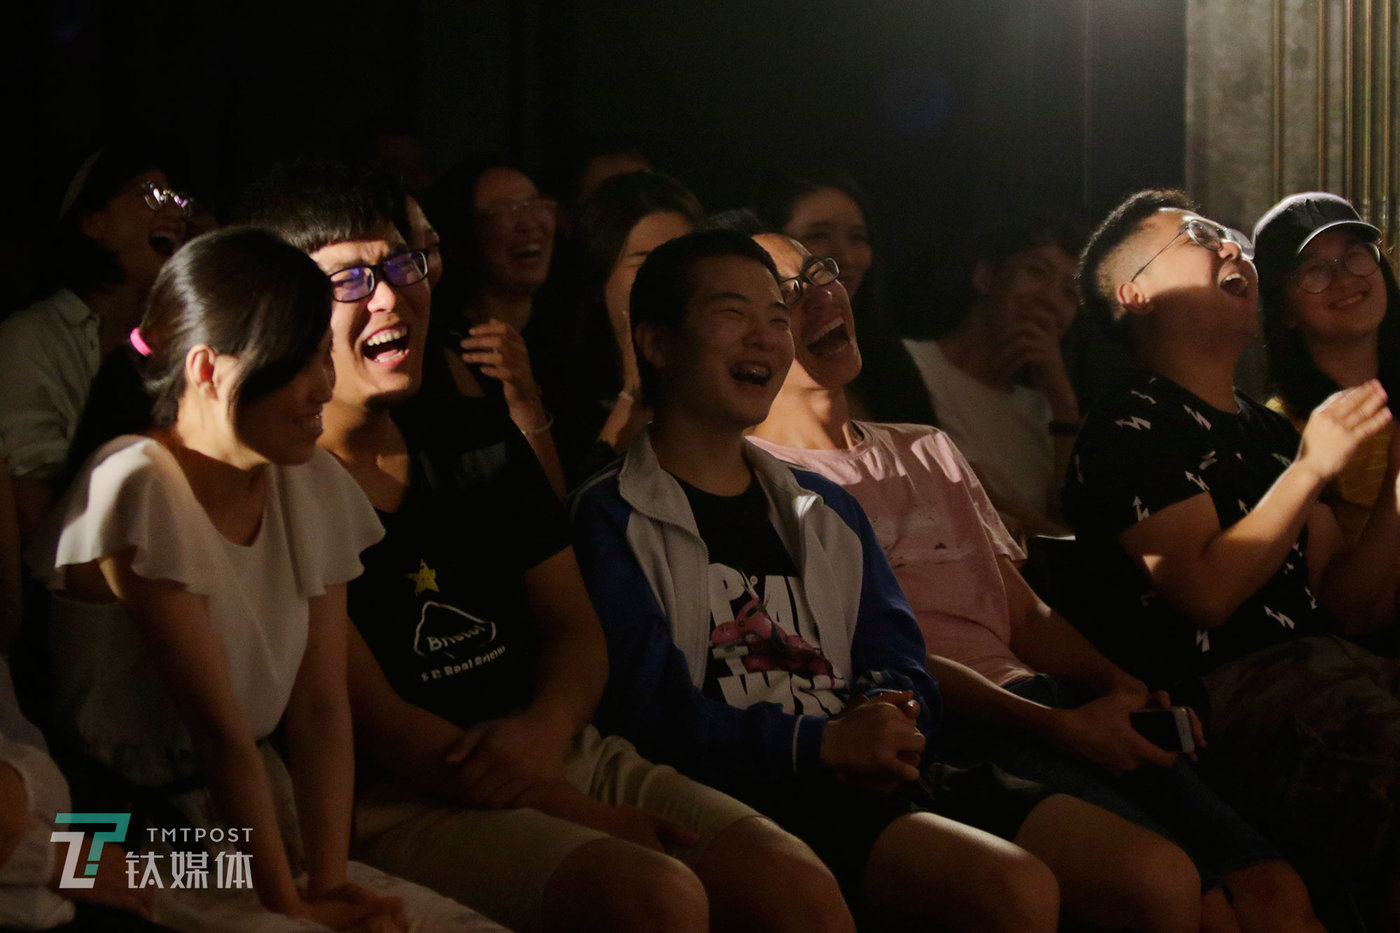 June 23, Beijing, audience members are in stitches by Hu Lan